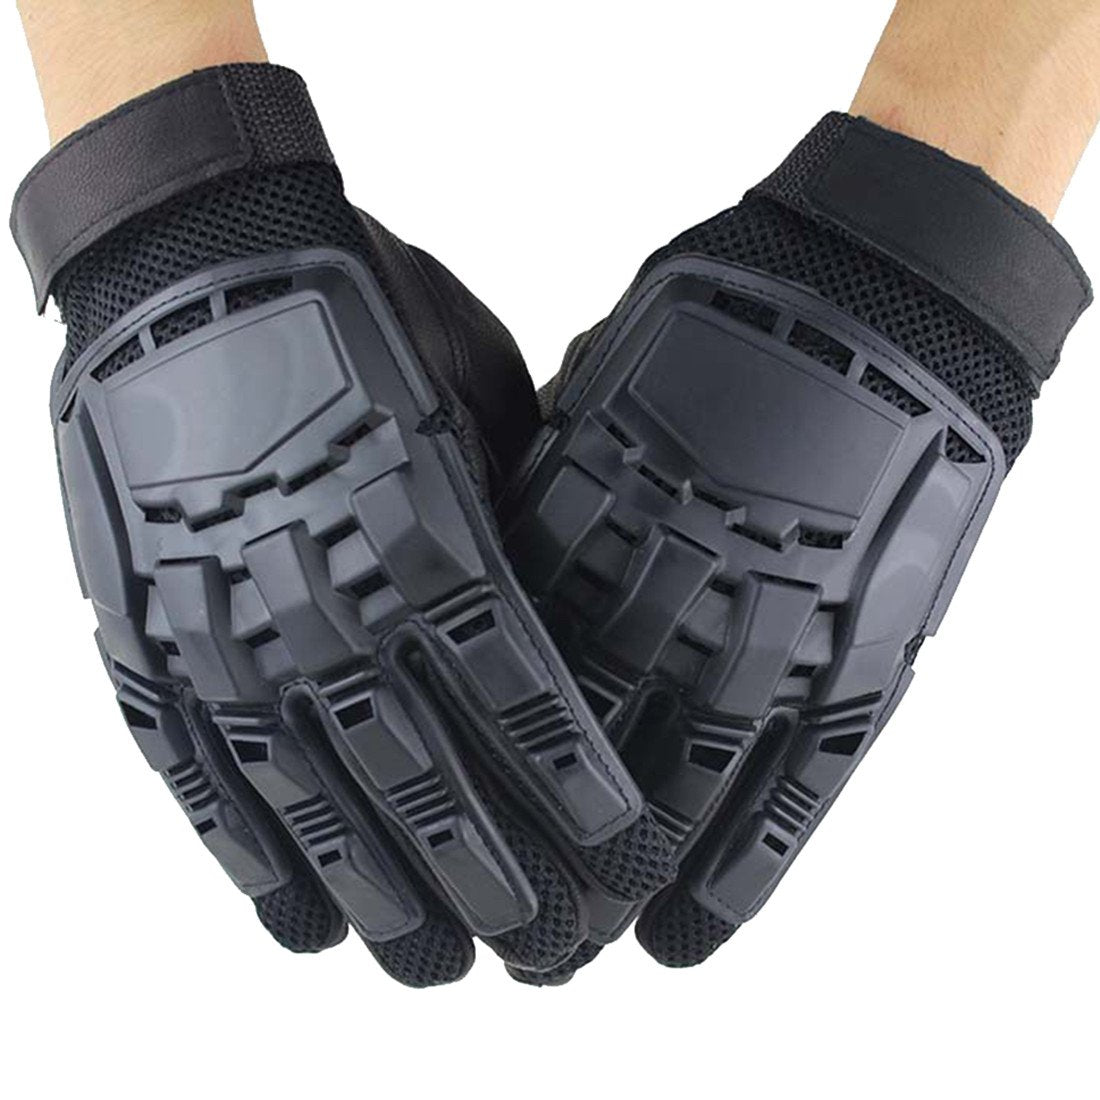 Military Heavy Protective Gloves